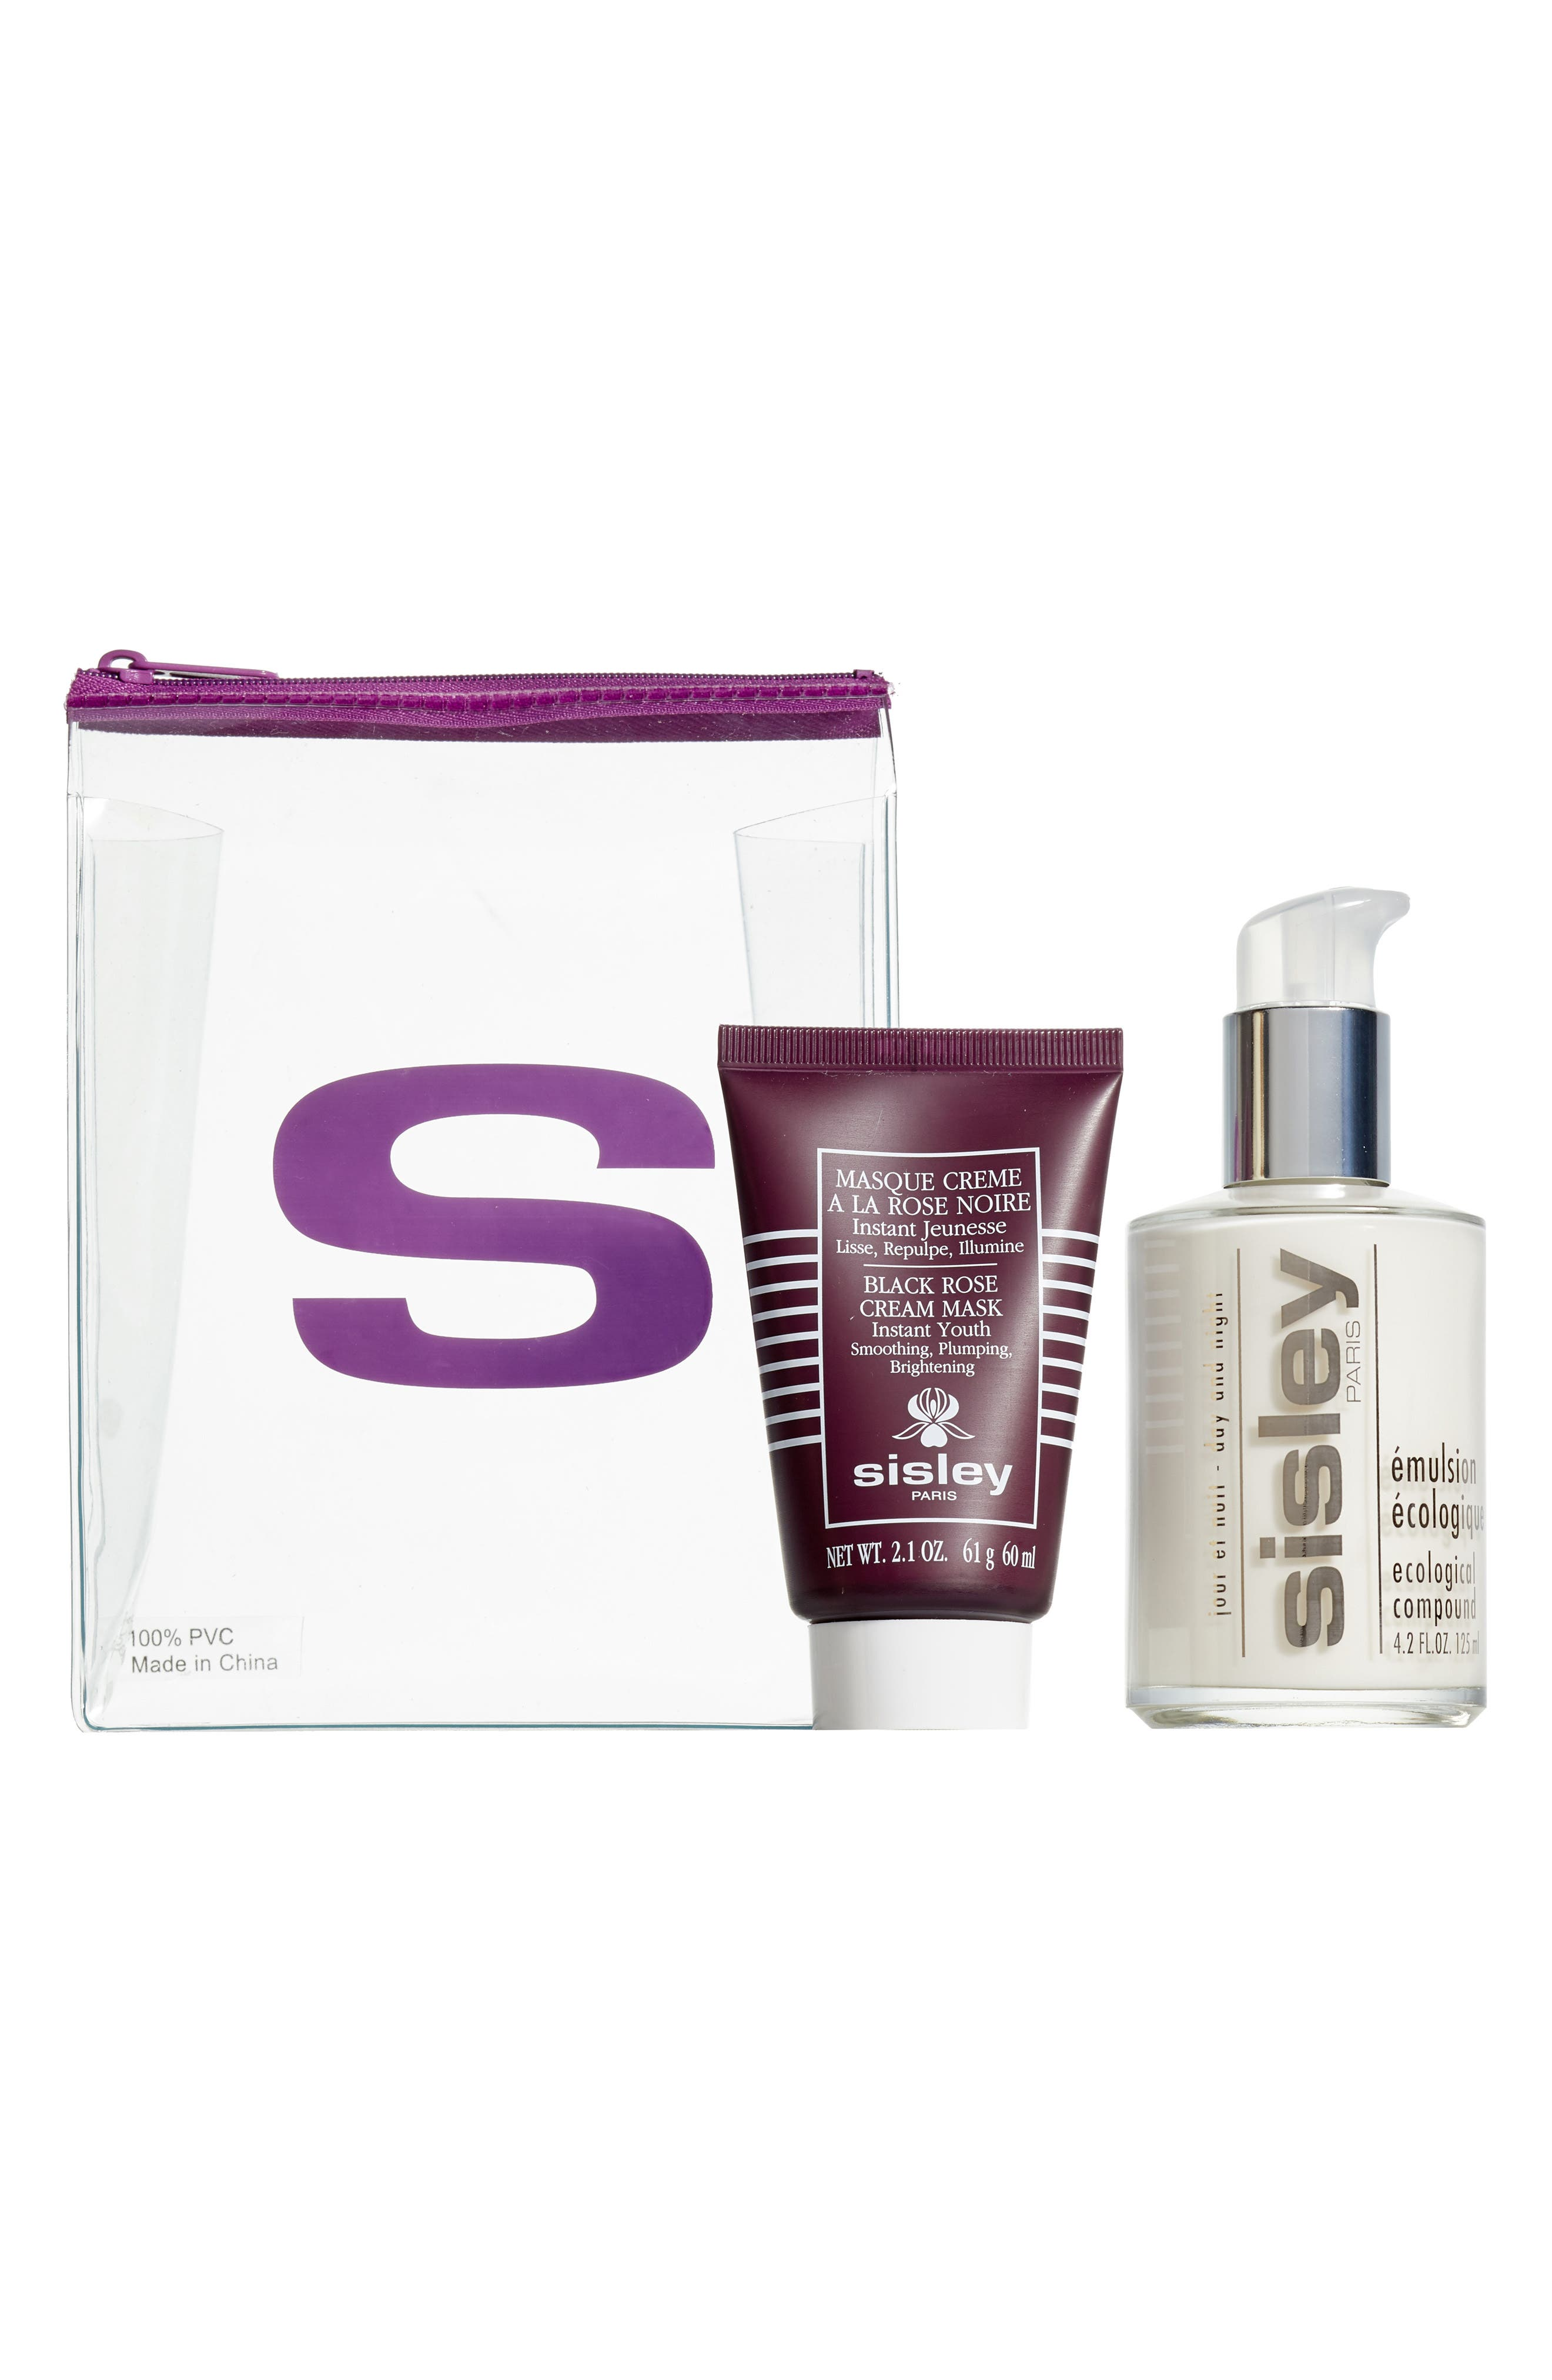 Sisley Paris The Best Sellers Set ($412 Value)